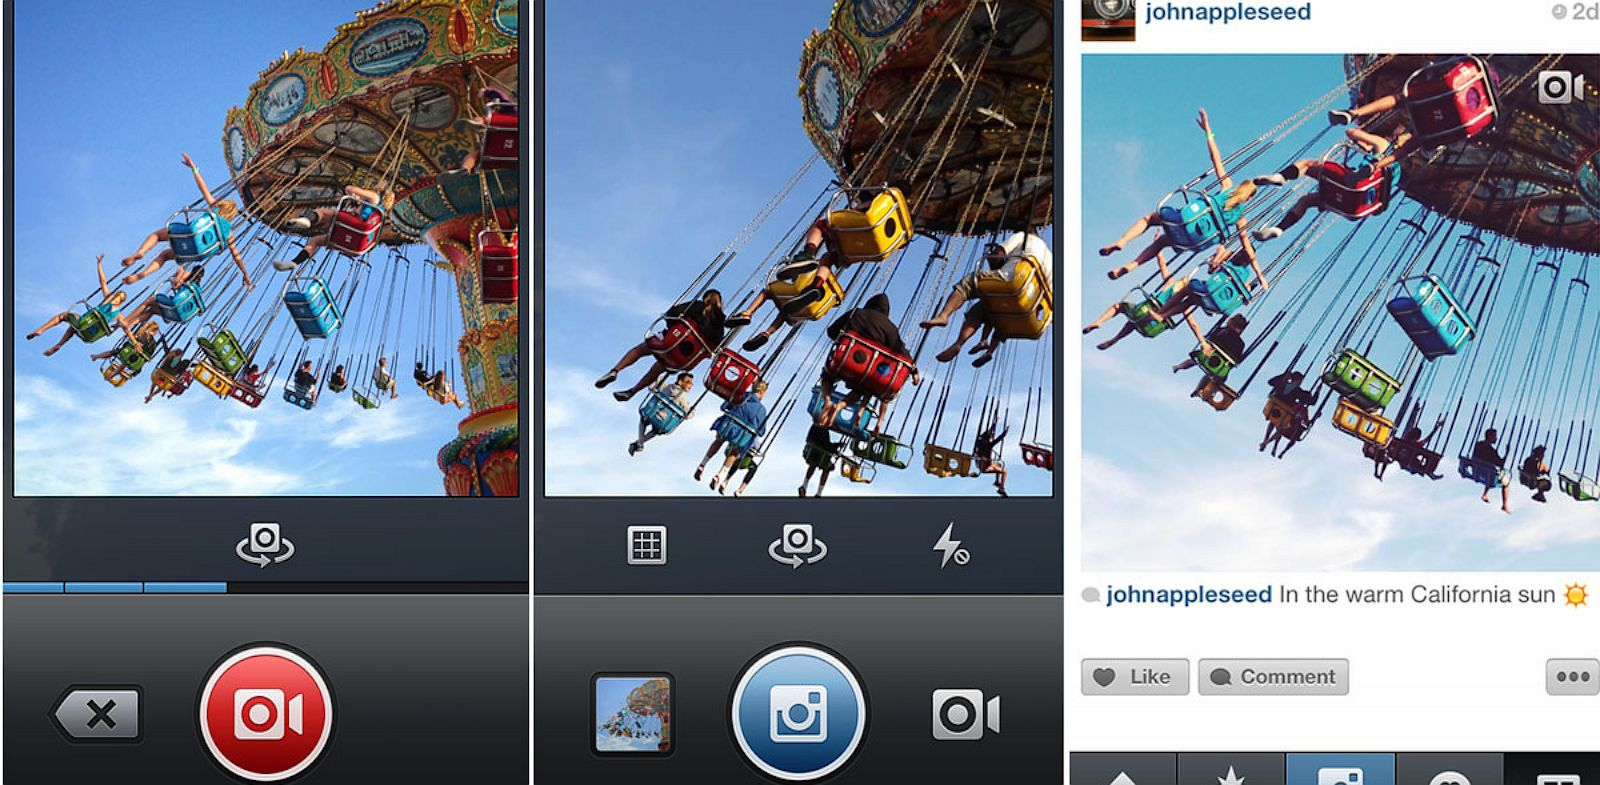 PHOTO: Instagram introduces and demonstrates new features such as video.